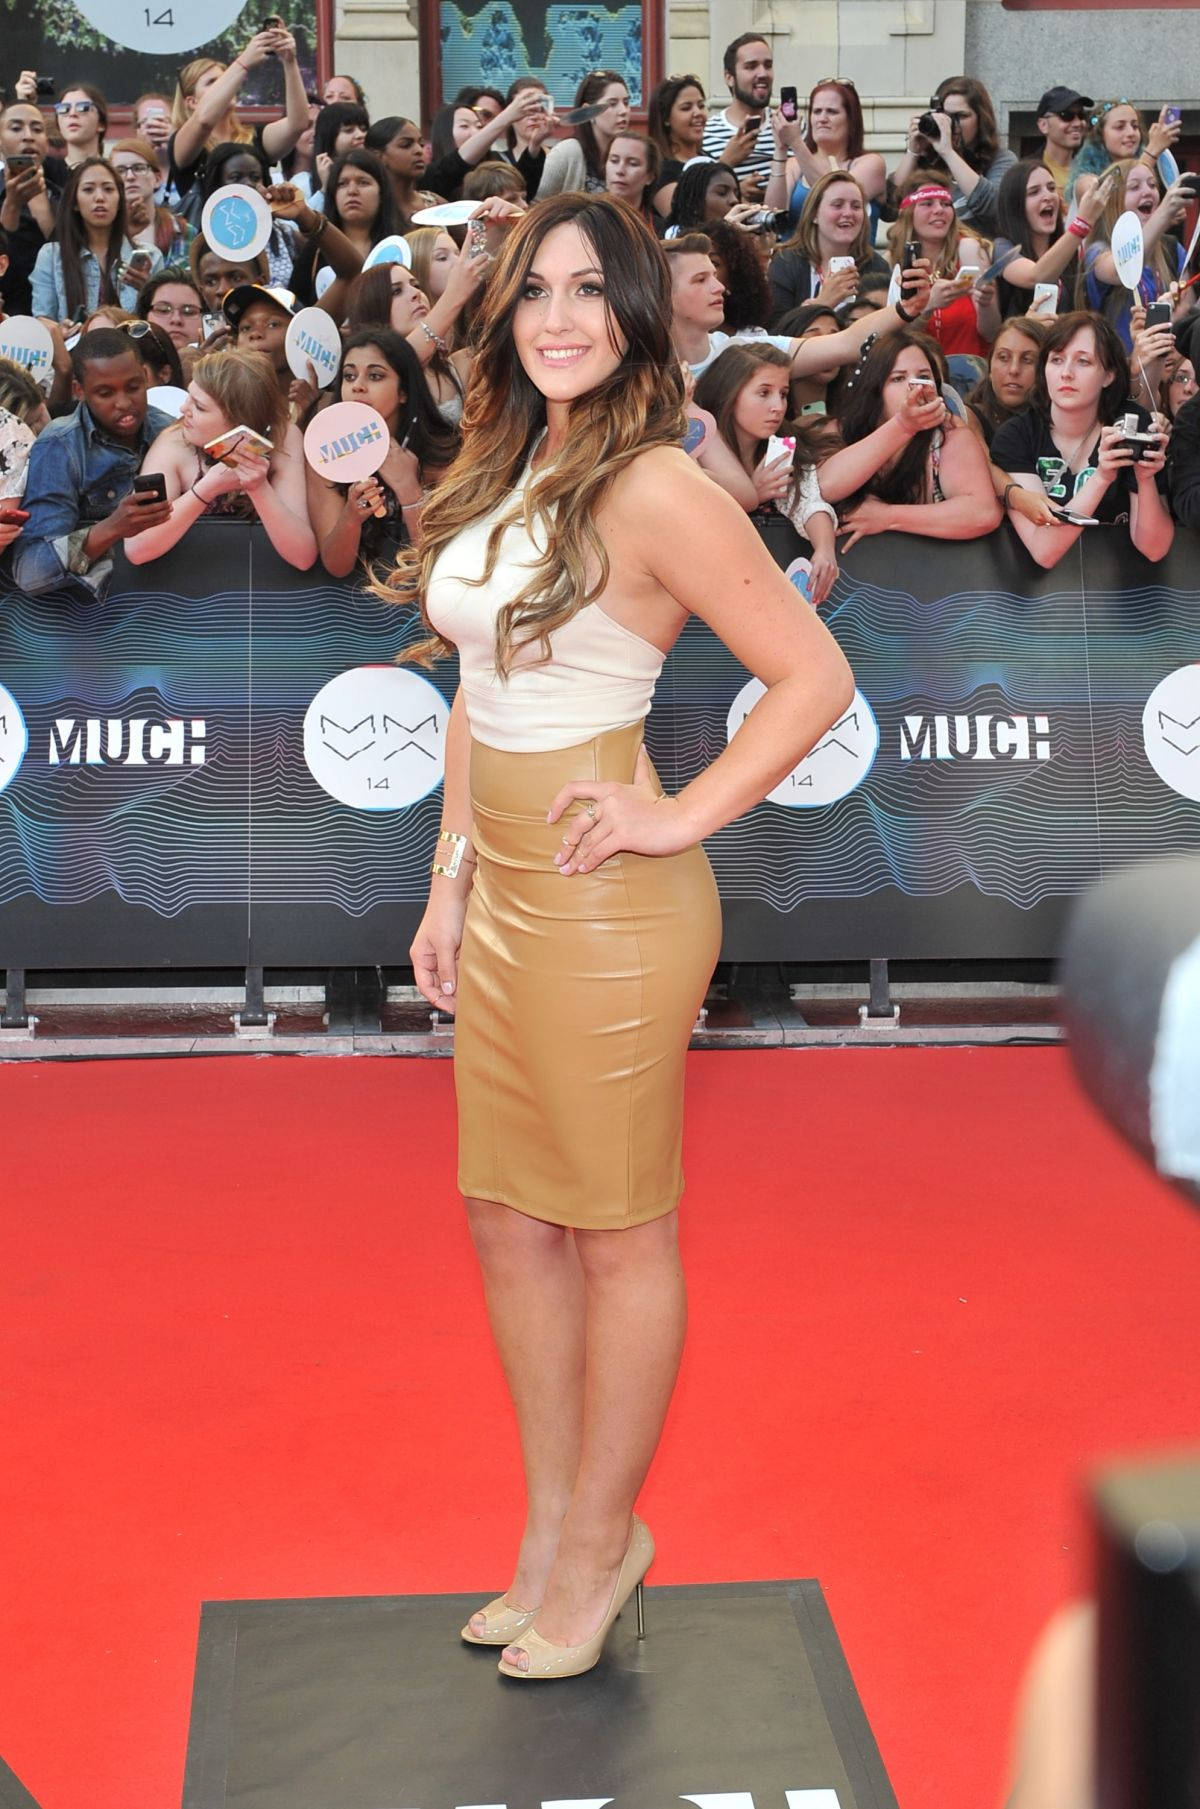 ALYSSA REID at Muchmusic Video Awards in Toronto